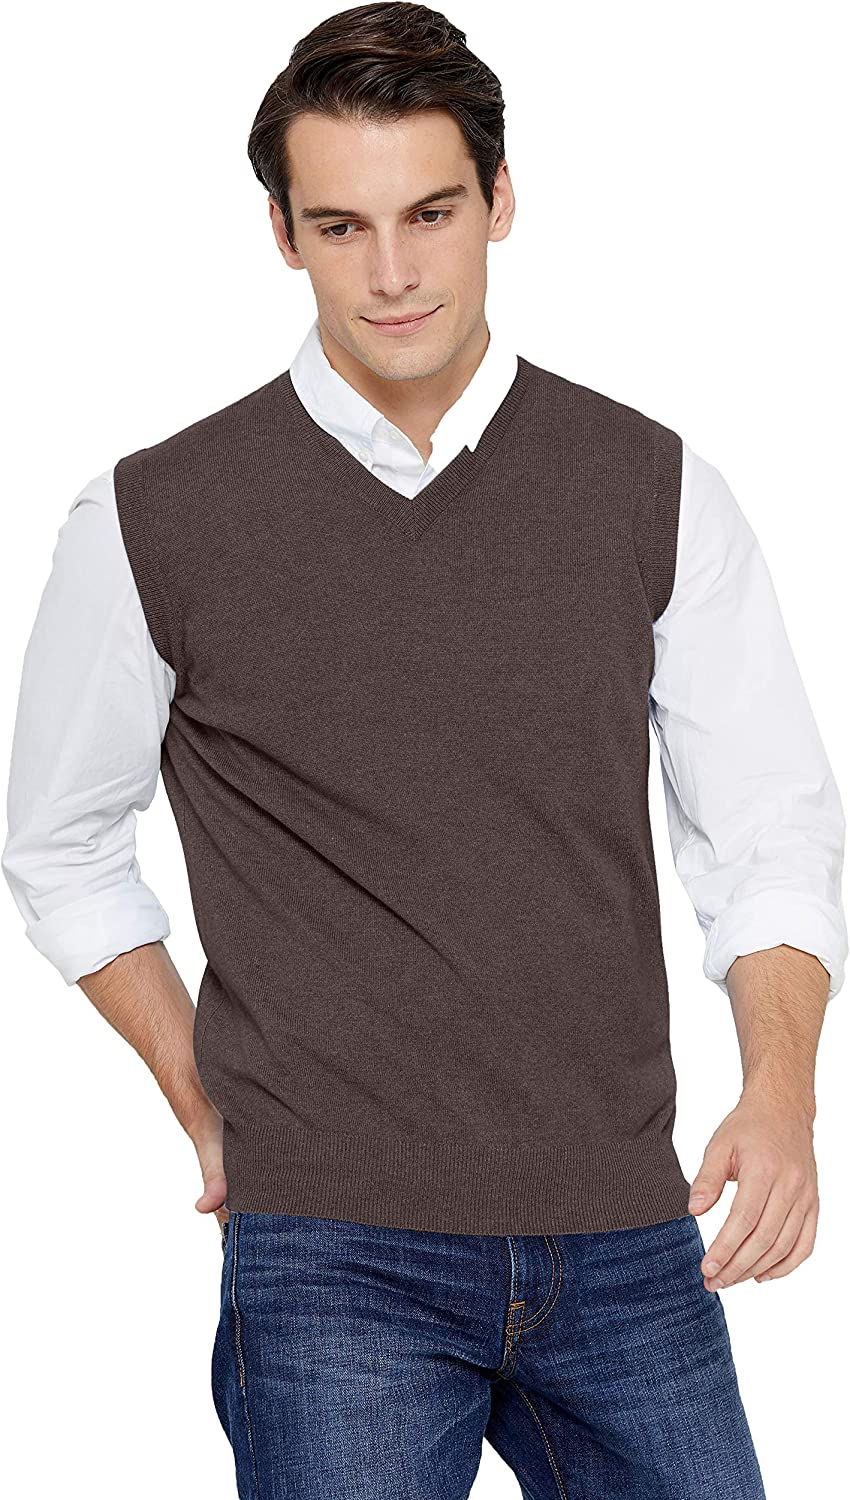 State It is very popular Cashmere Men's Classic Sleeveless Sweater Ranking TOP4 P 100% Vest